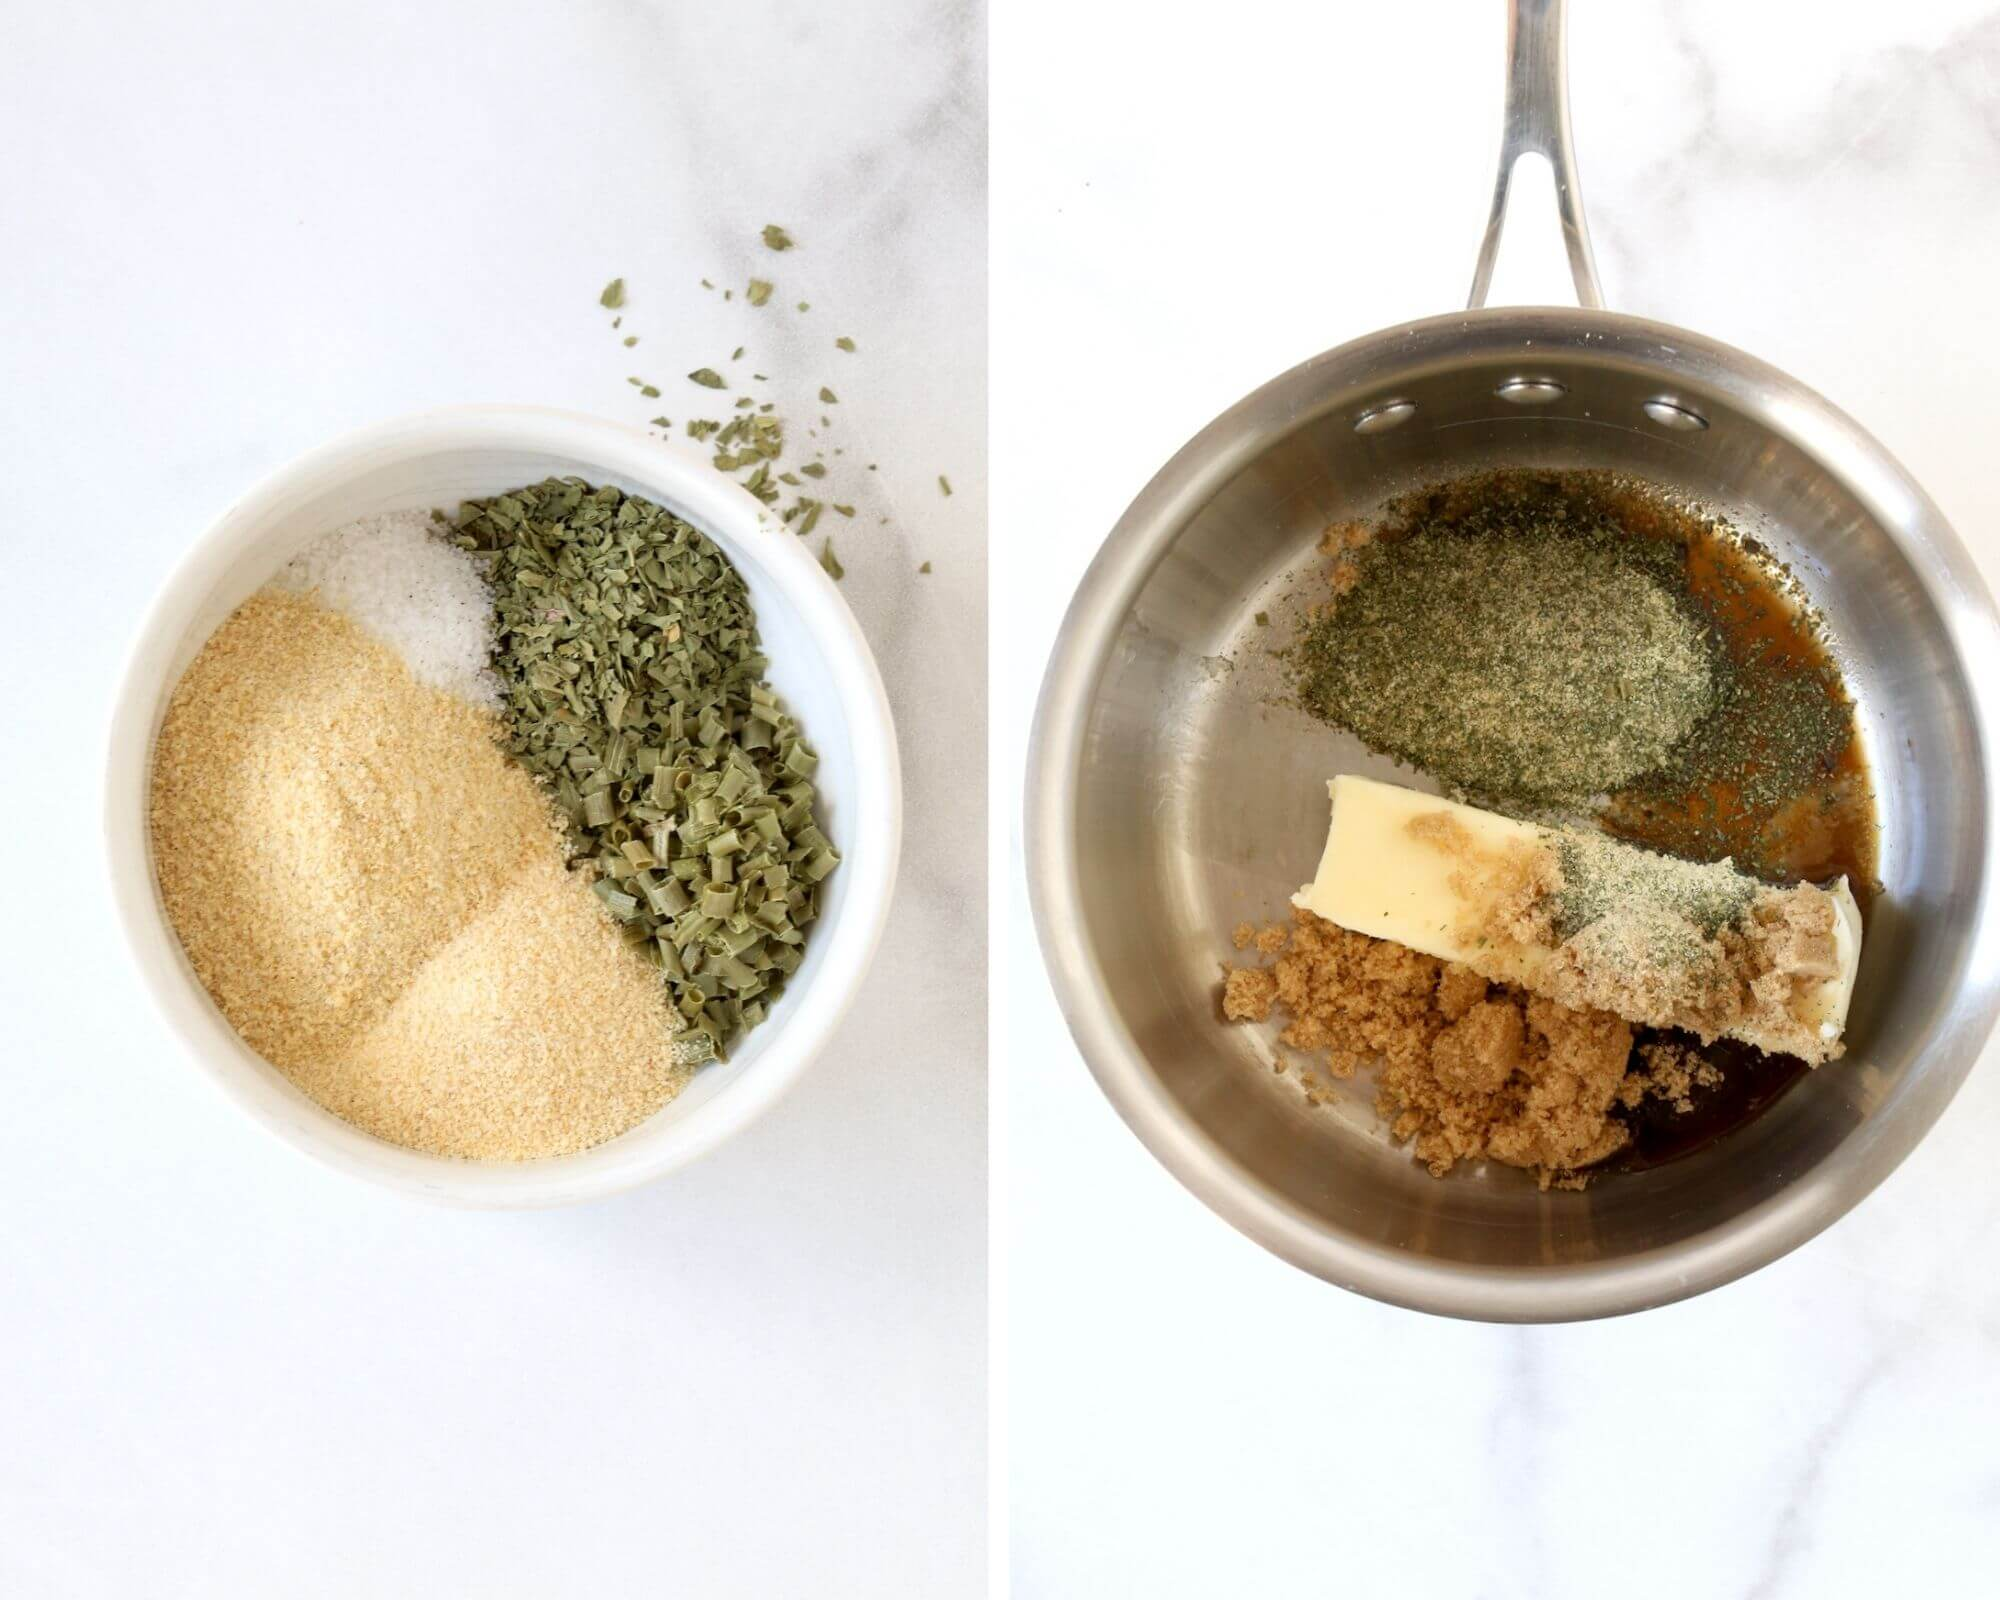 A small bowl with ranch seasoning and a sauce pan with butter, brown sugar and ranch seasoning.                                                                                                                                                                                                                                                                                                                                                                                                                             f